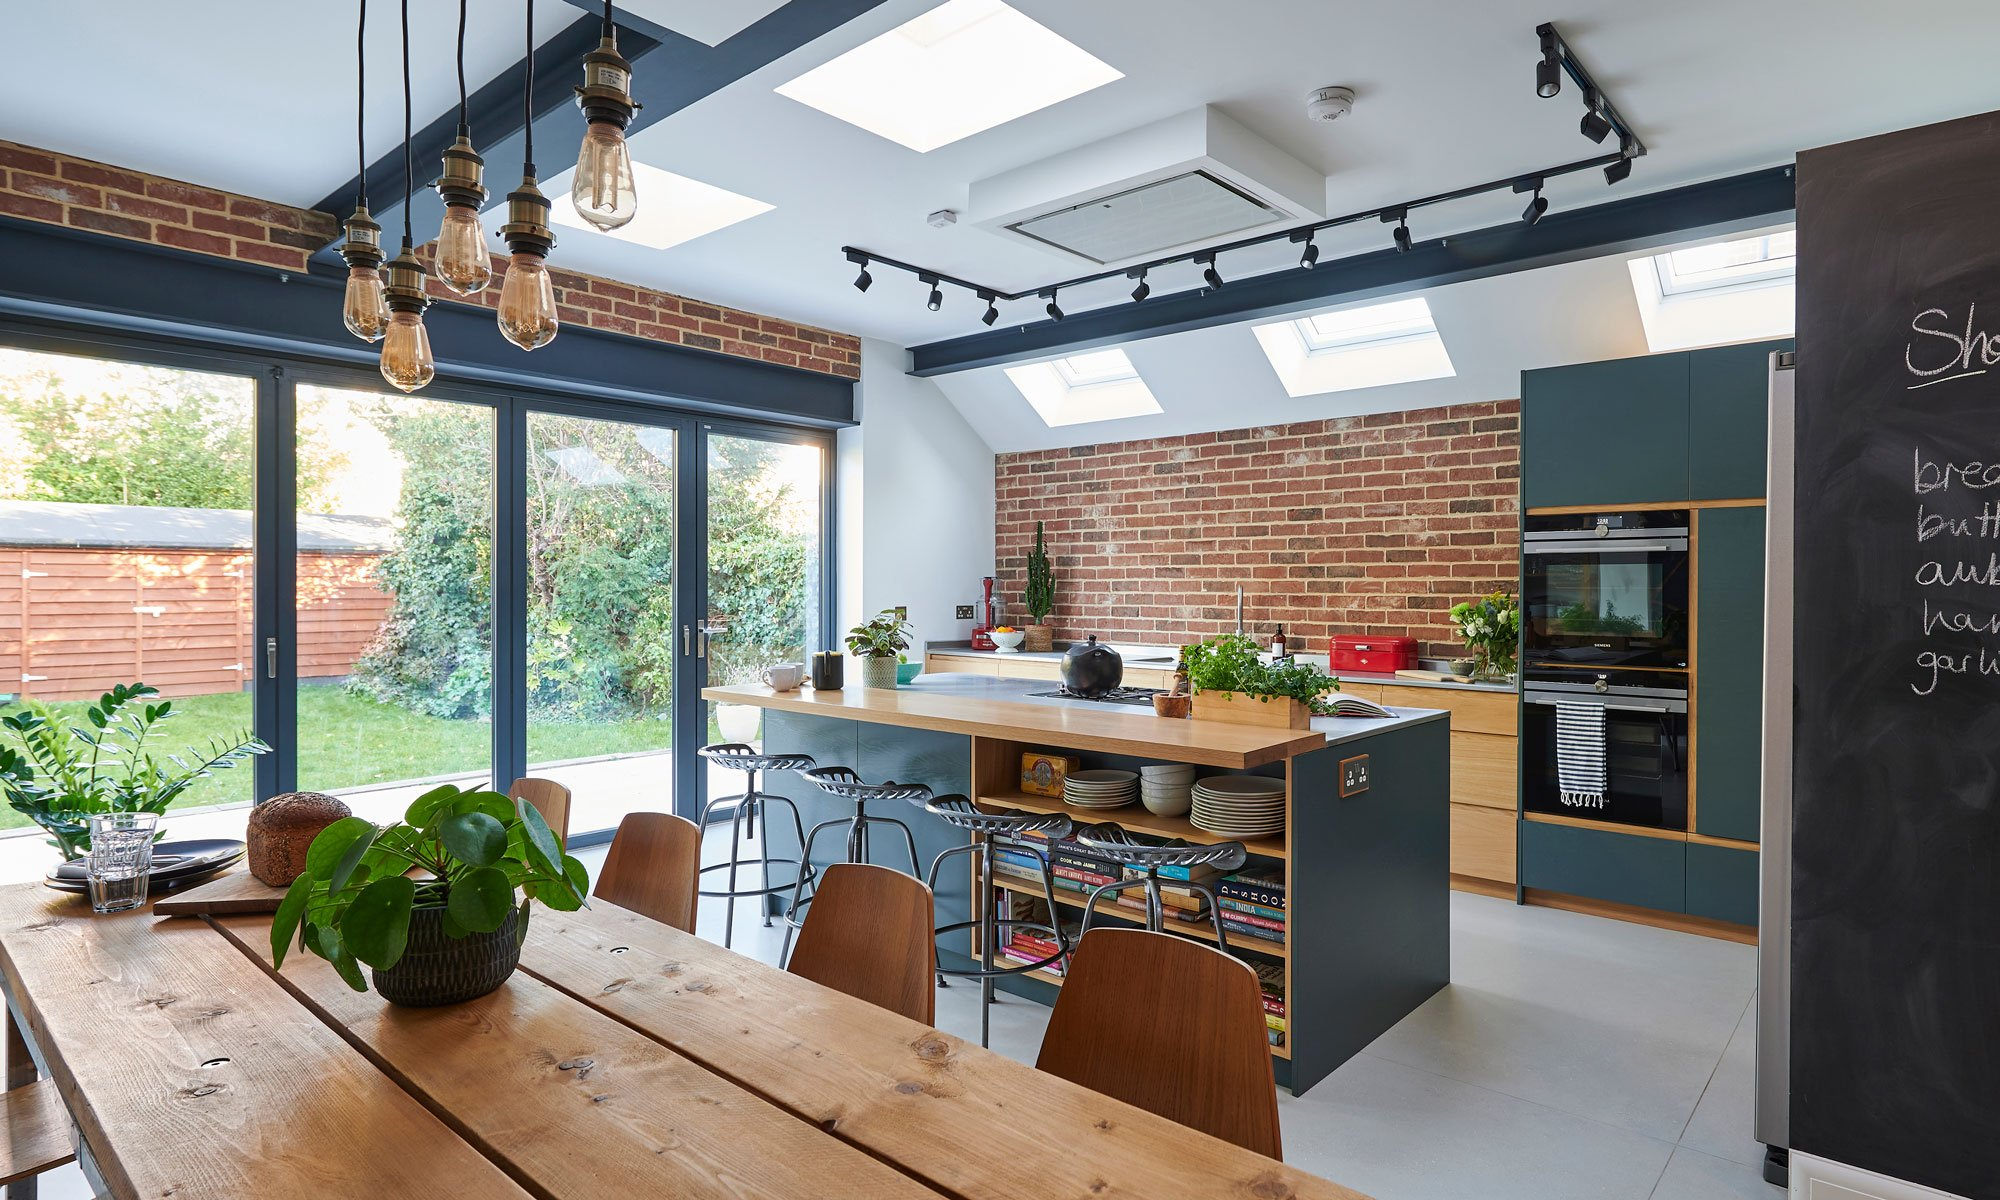 Before and after: Savvy planning saw homeowners extend tiny kitchen into a contemporary open plan space